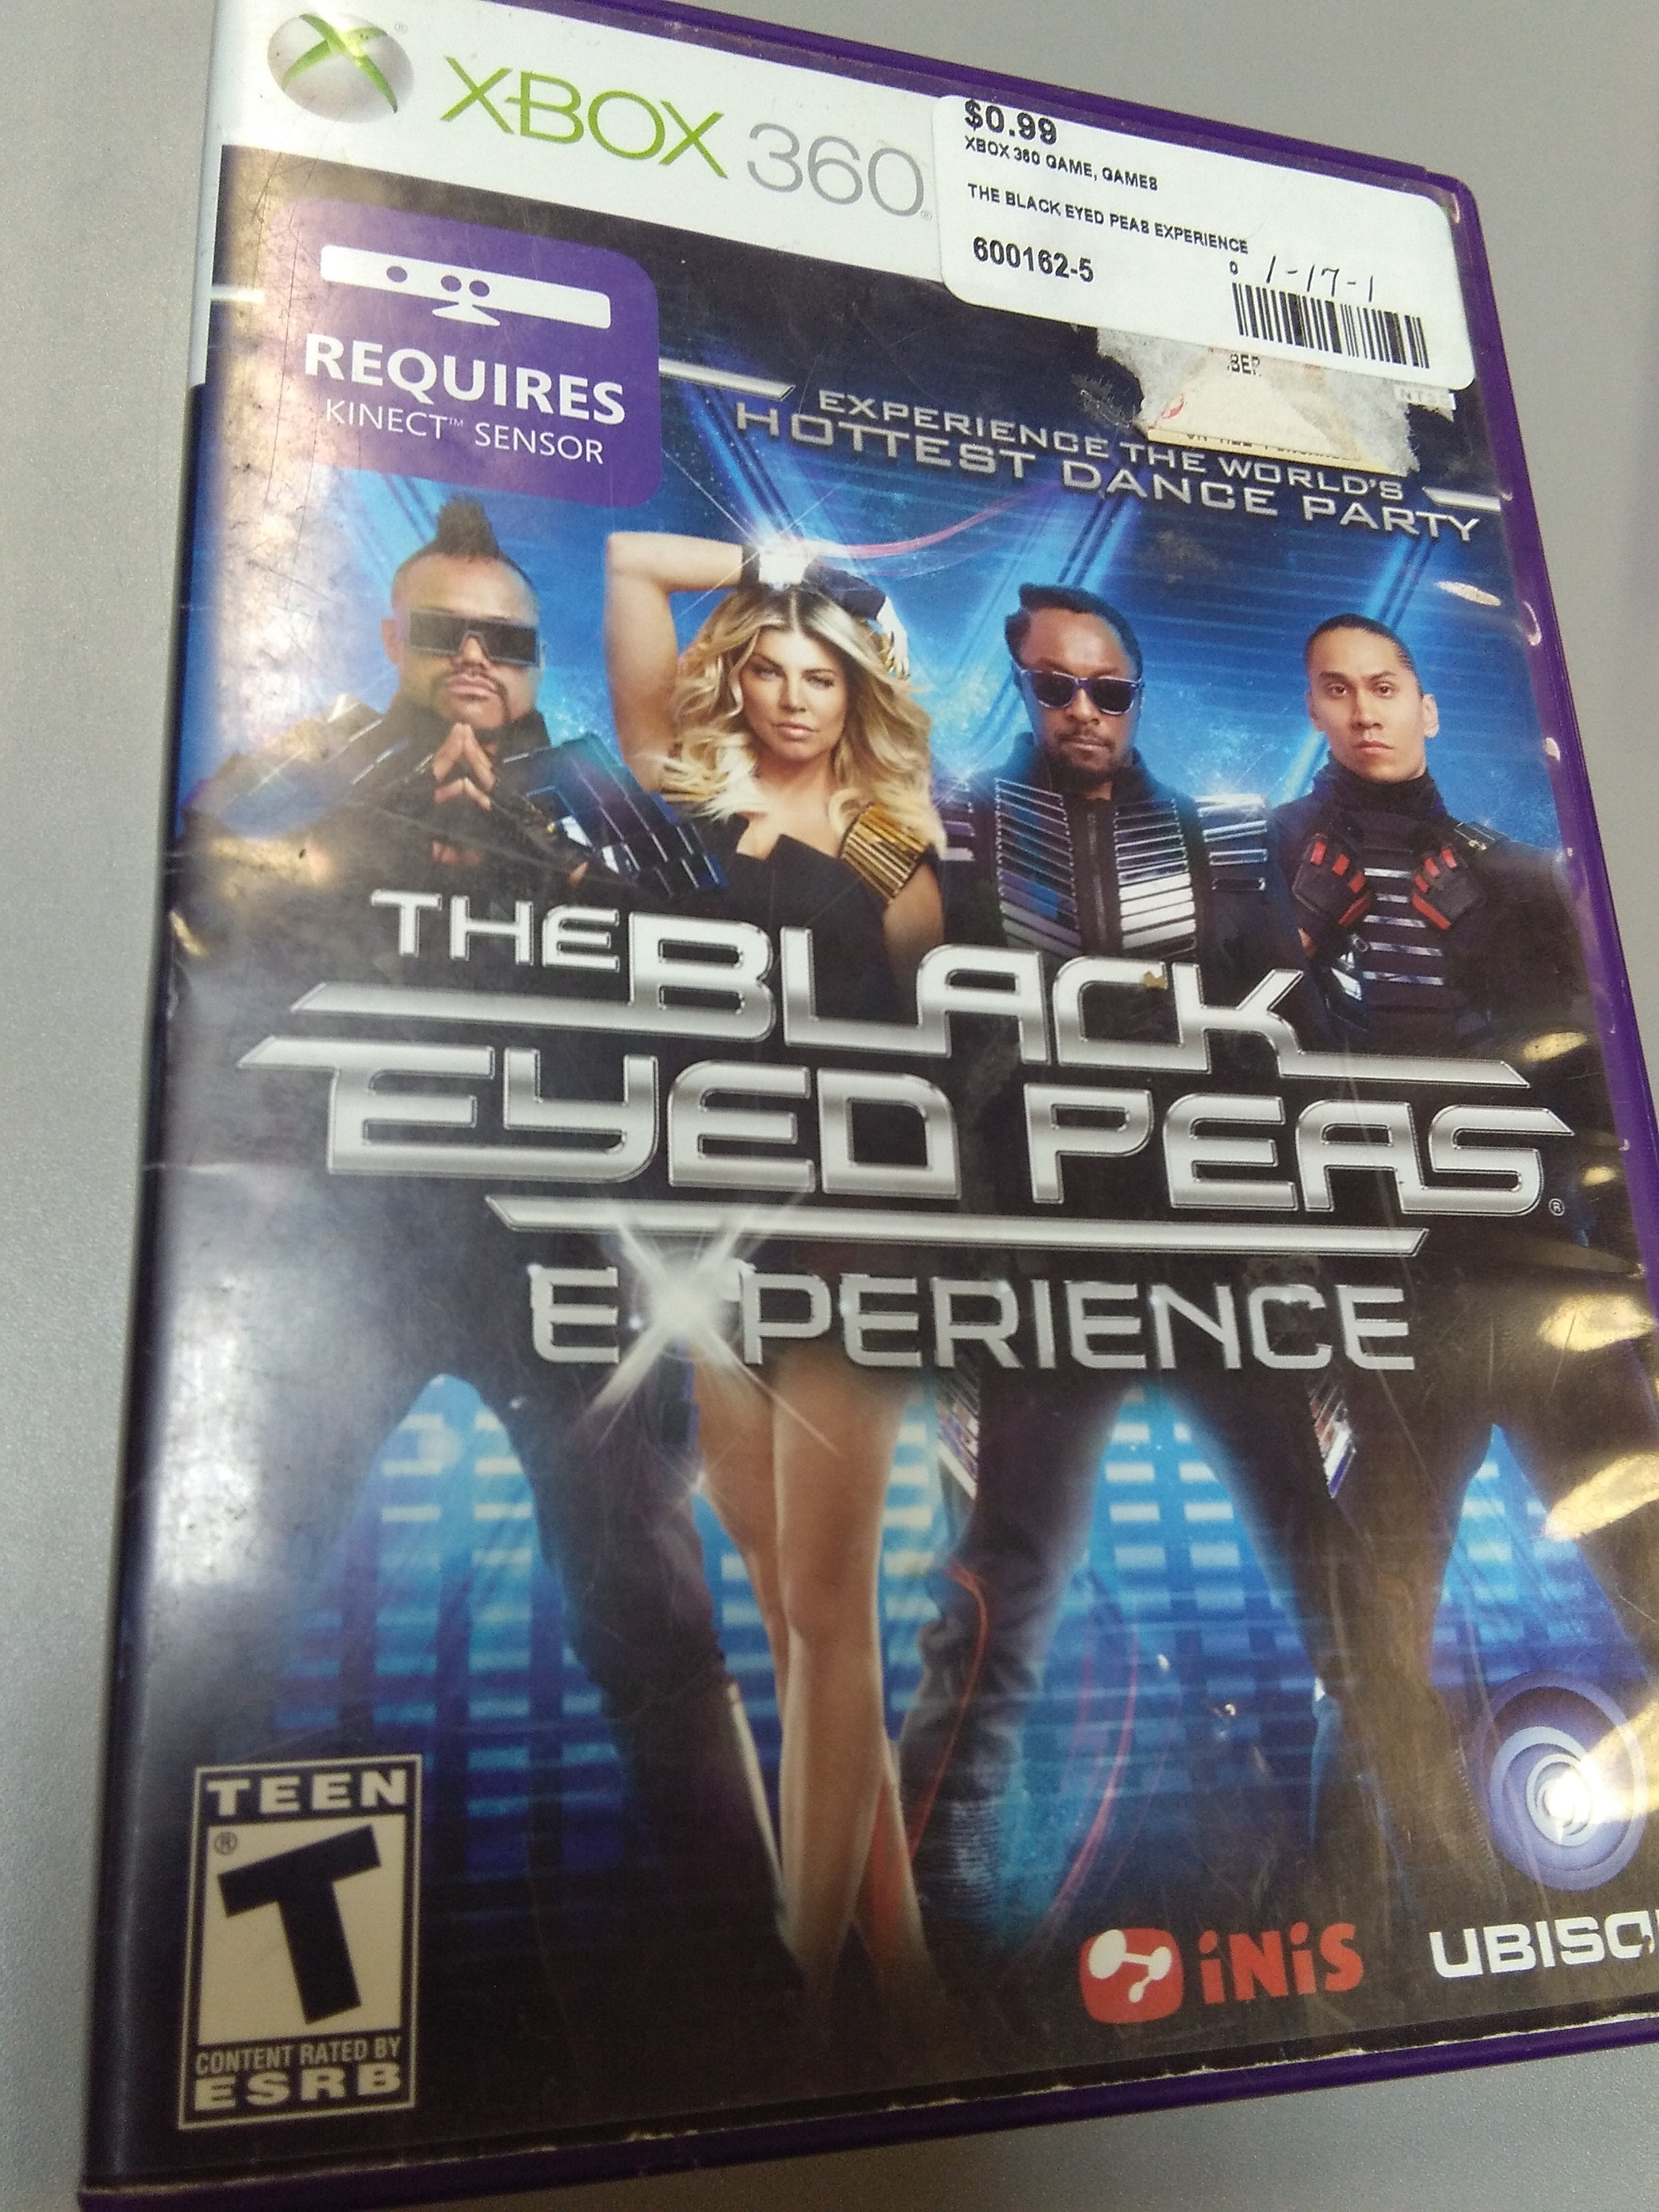 THE BLACK EYED PEAS EXPERIENCE XBOX 360 GAME